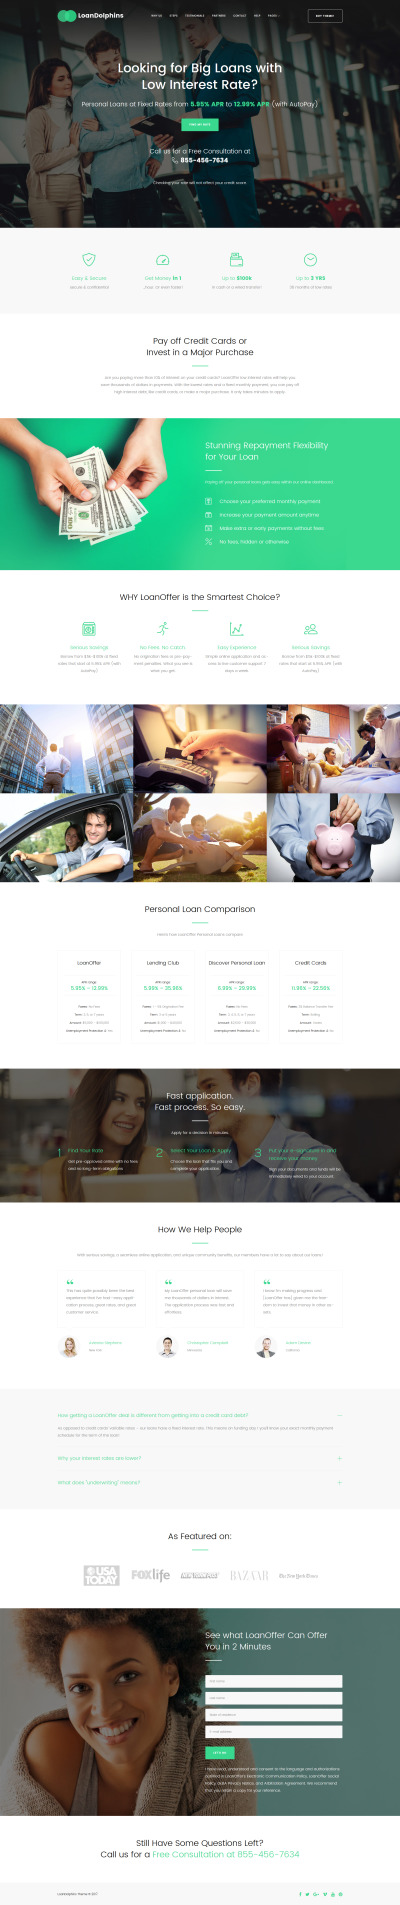 Loan Dolphins - Loan Company One Page WordPress Theme #61151